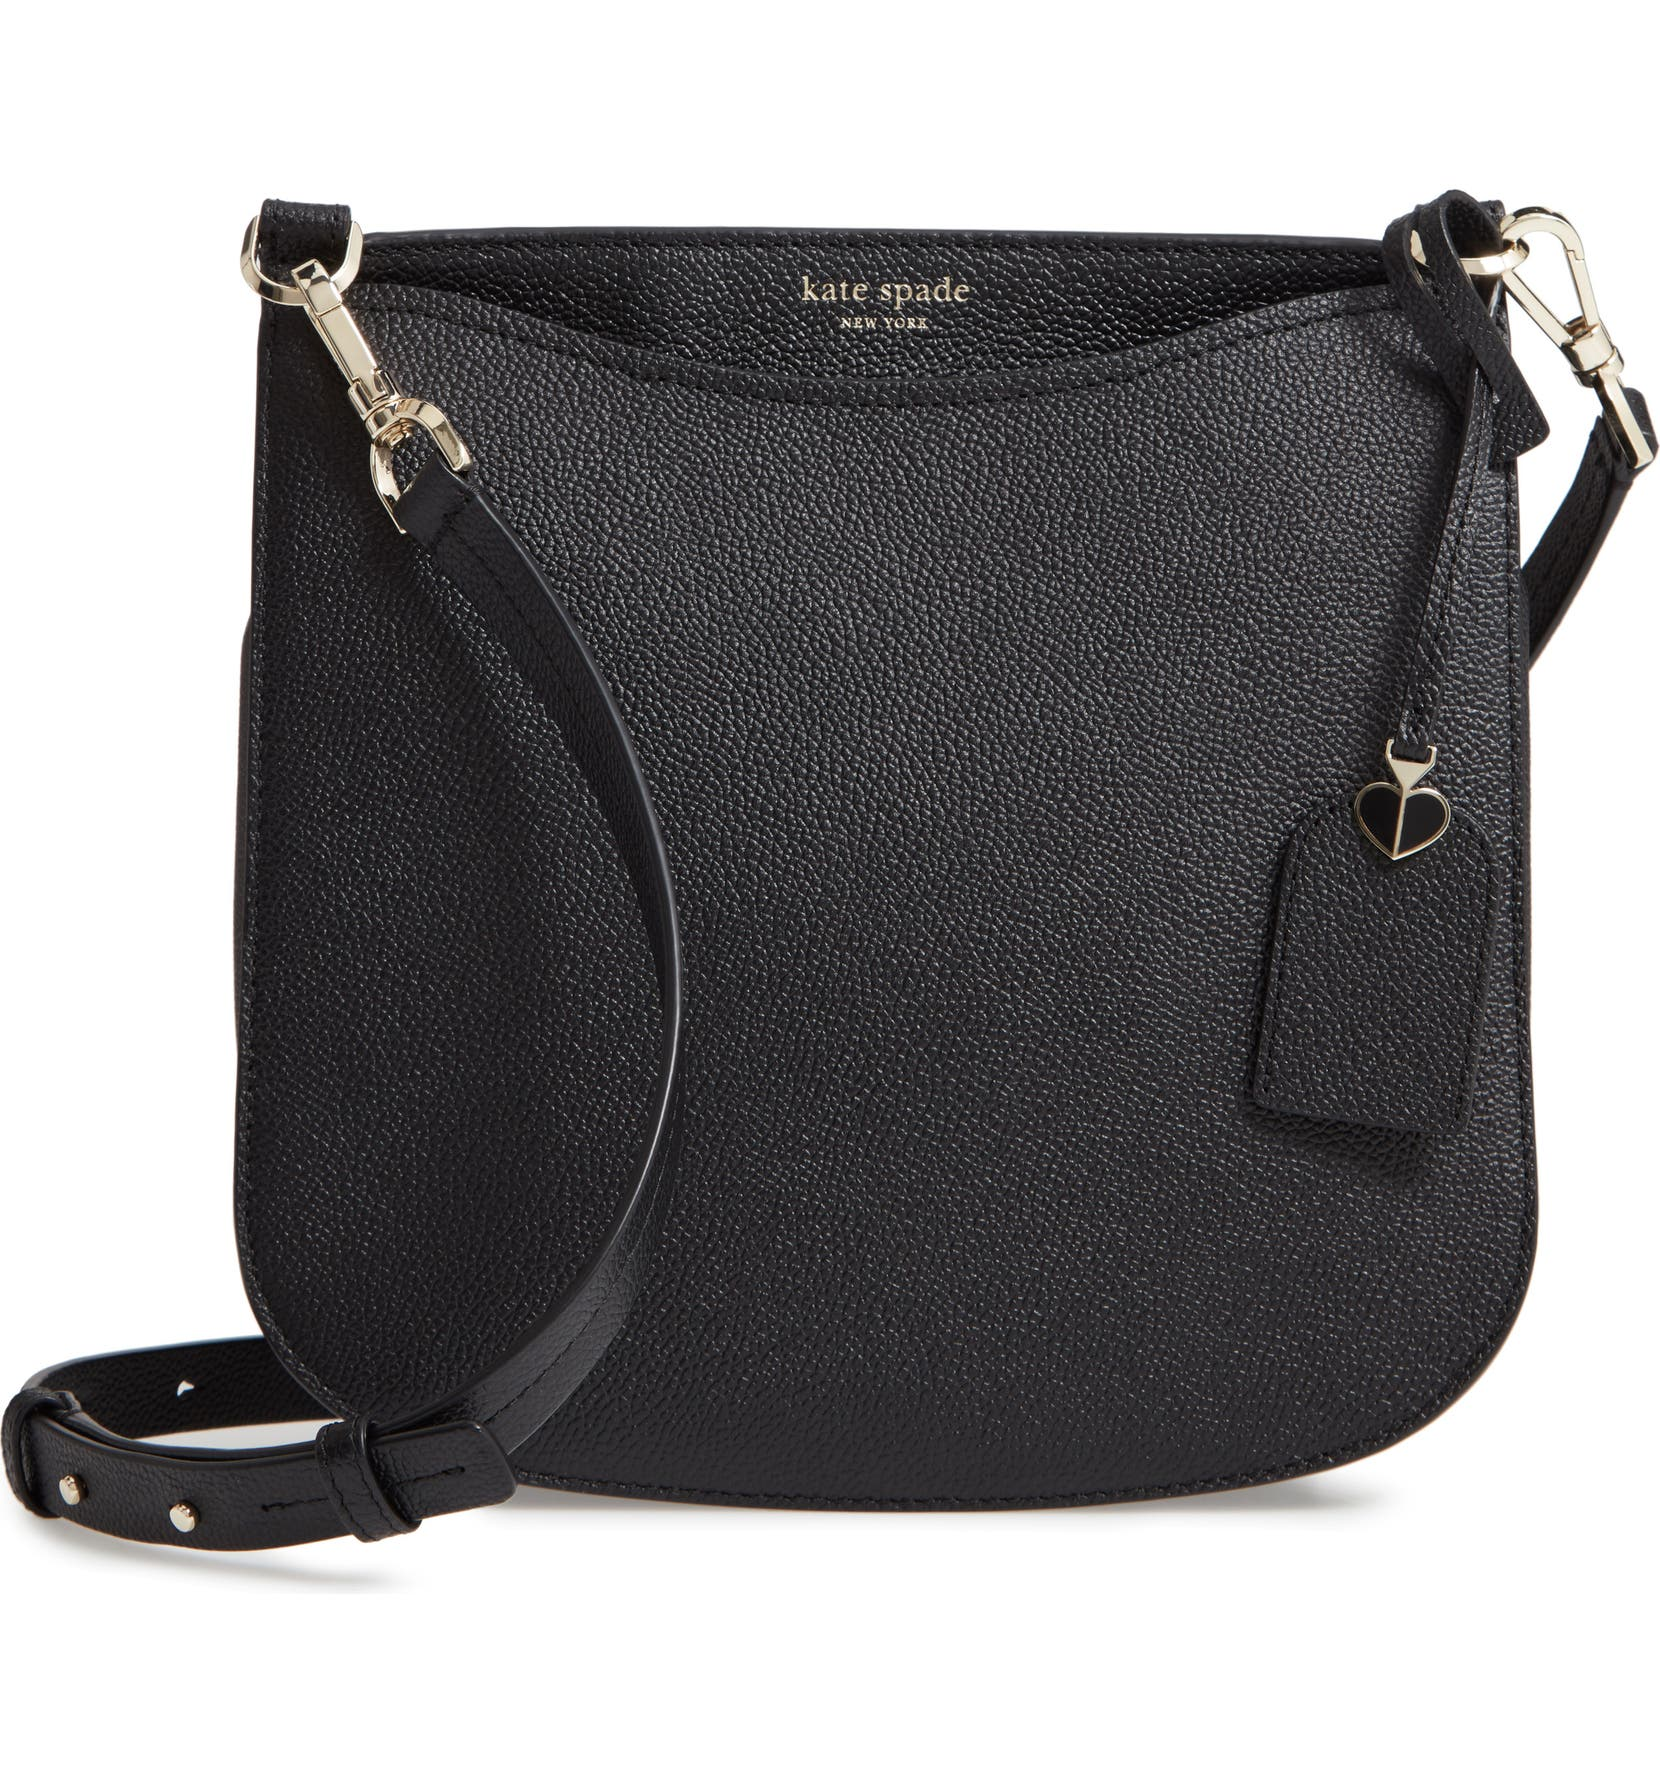 a22c0029be0c4 kate spade new york margaux large crossbody bag | Nordstrom